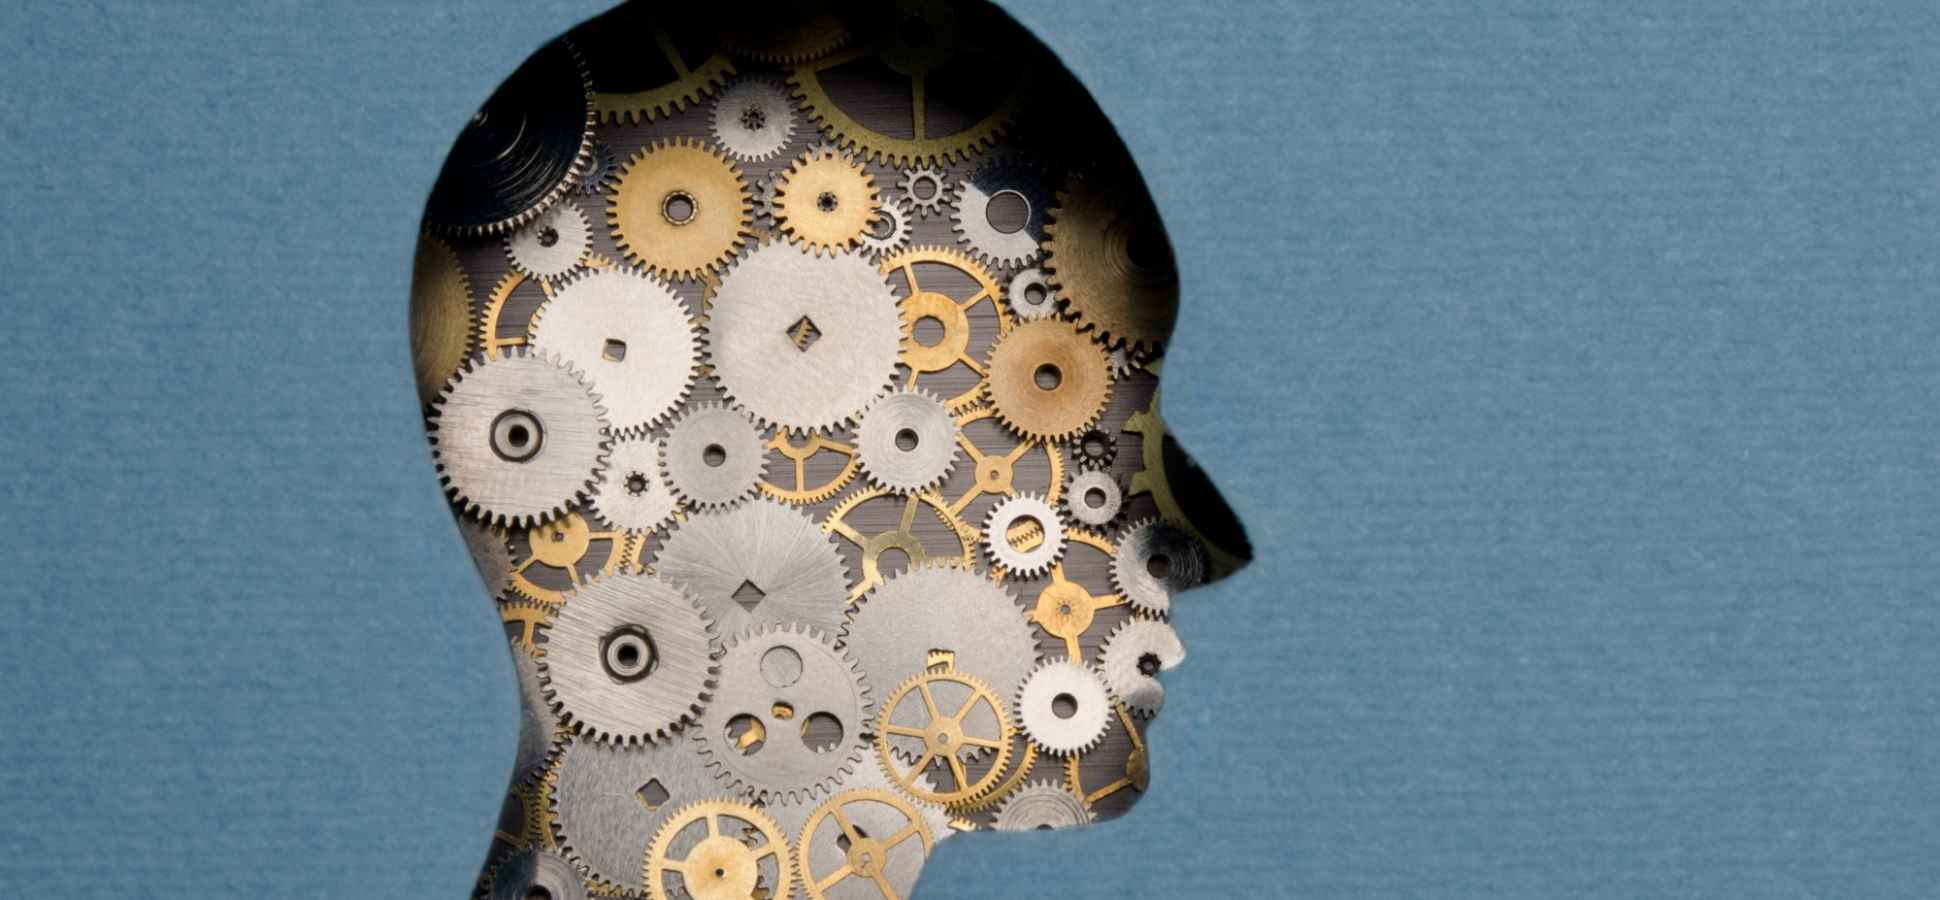 Machine Learning & Artificial Intelligence 101 For Executives | Inc.com